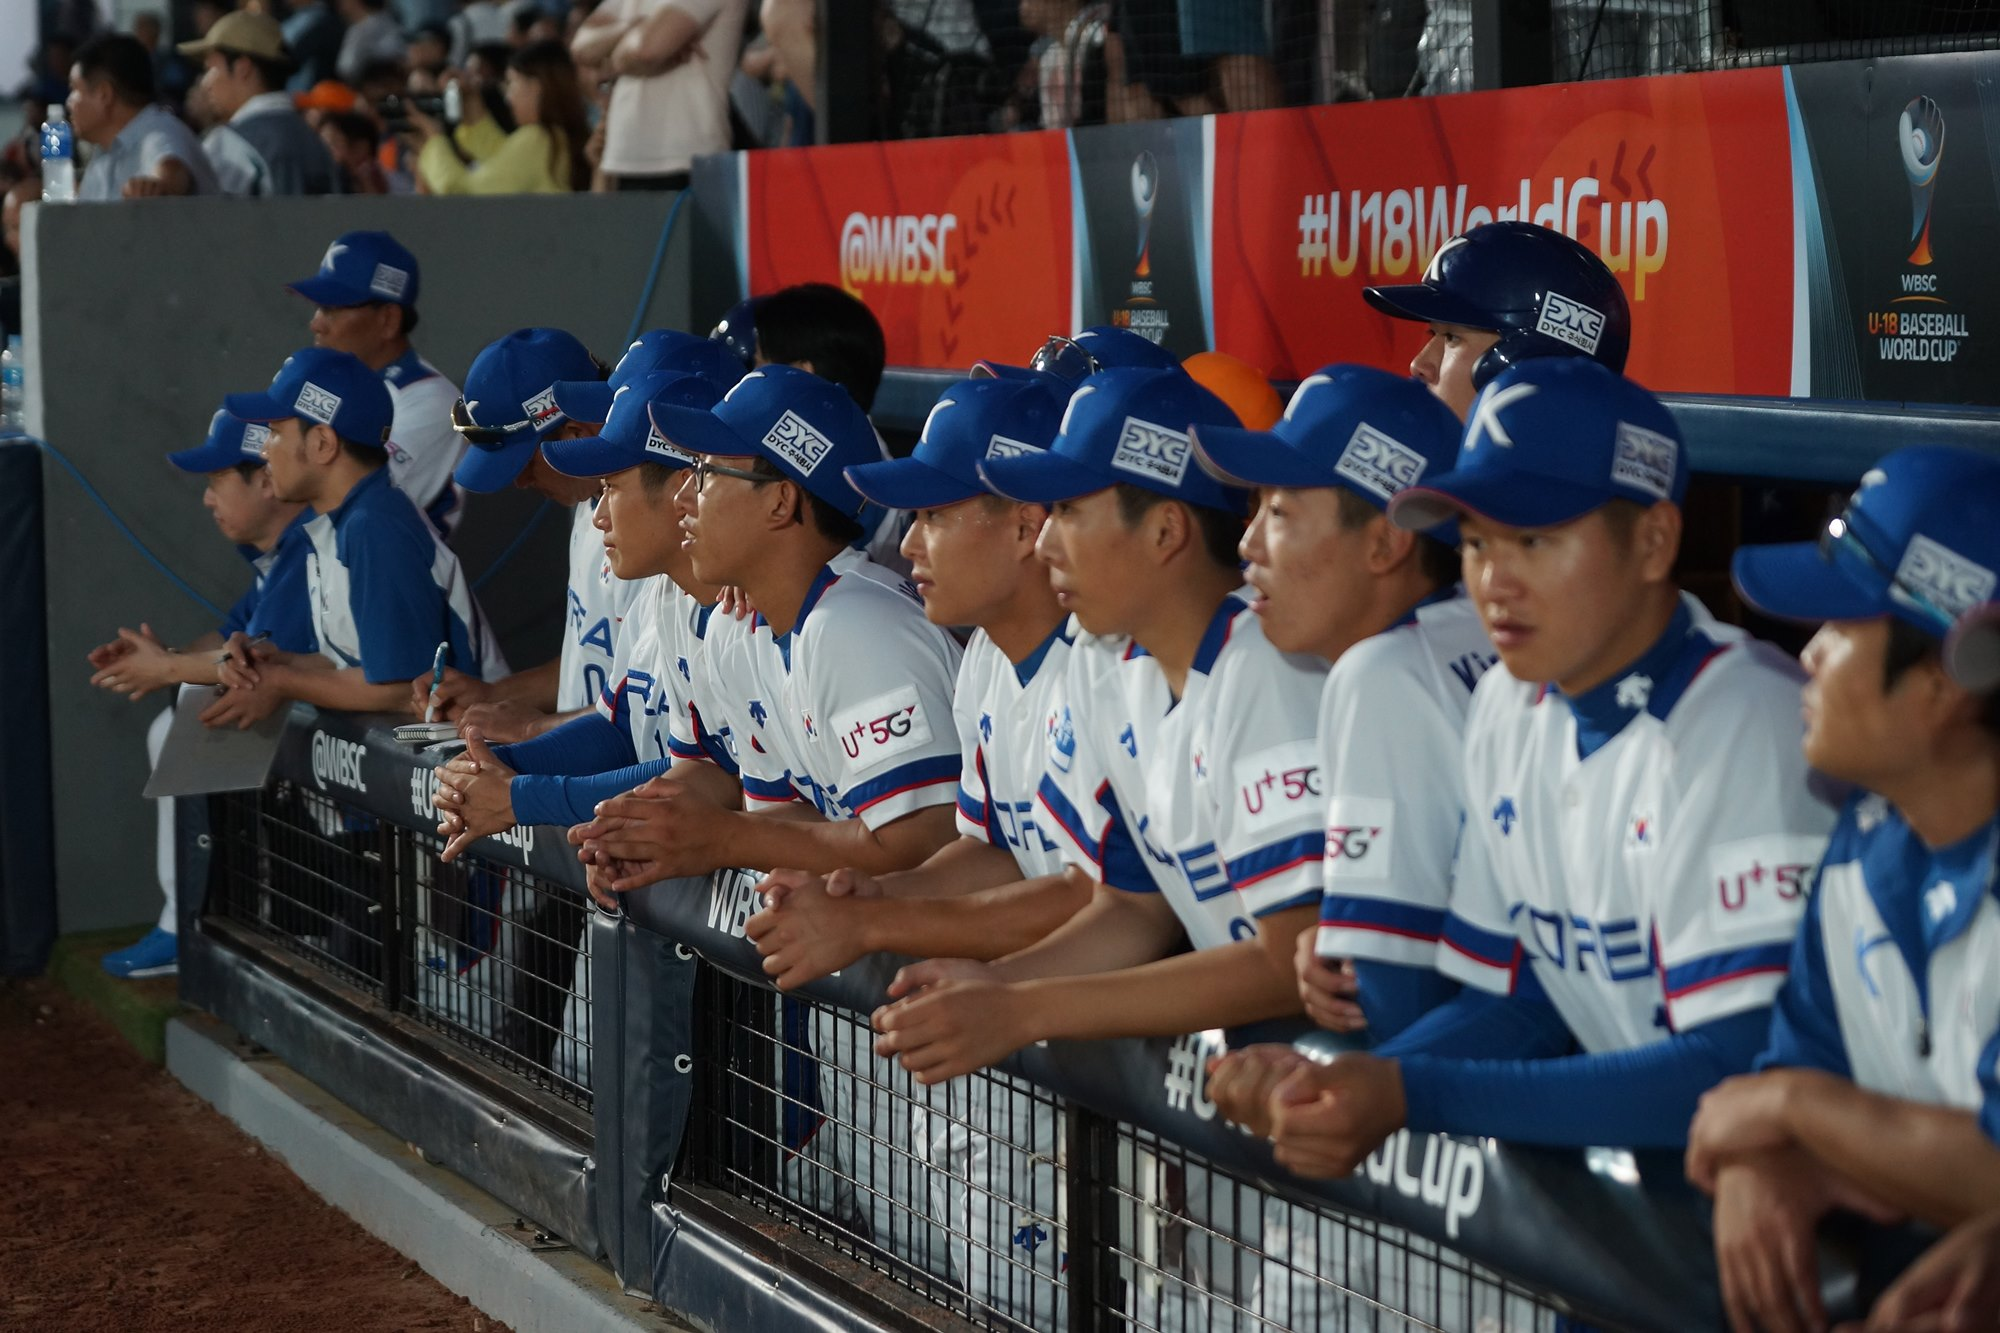 The dug out of the hosts Korea